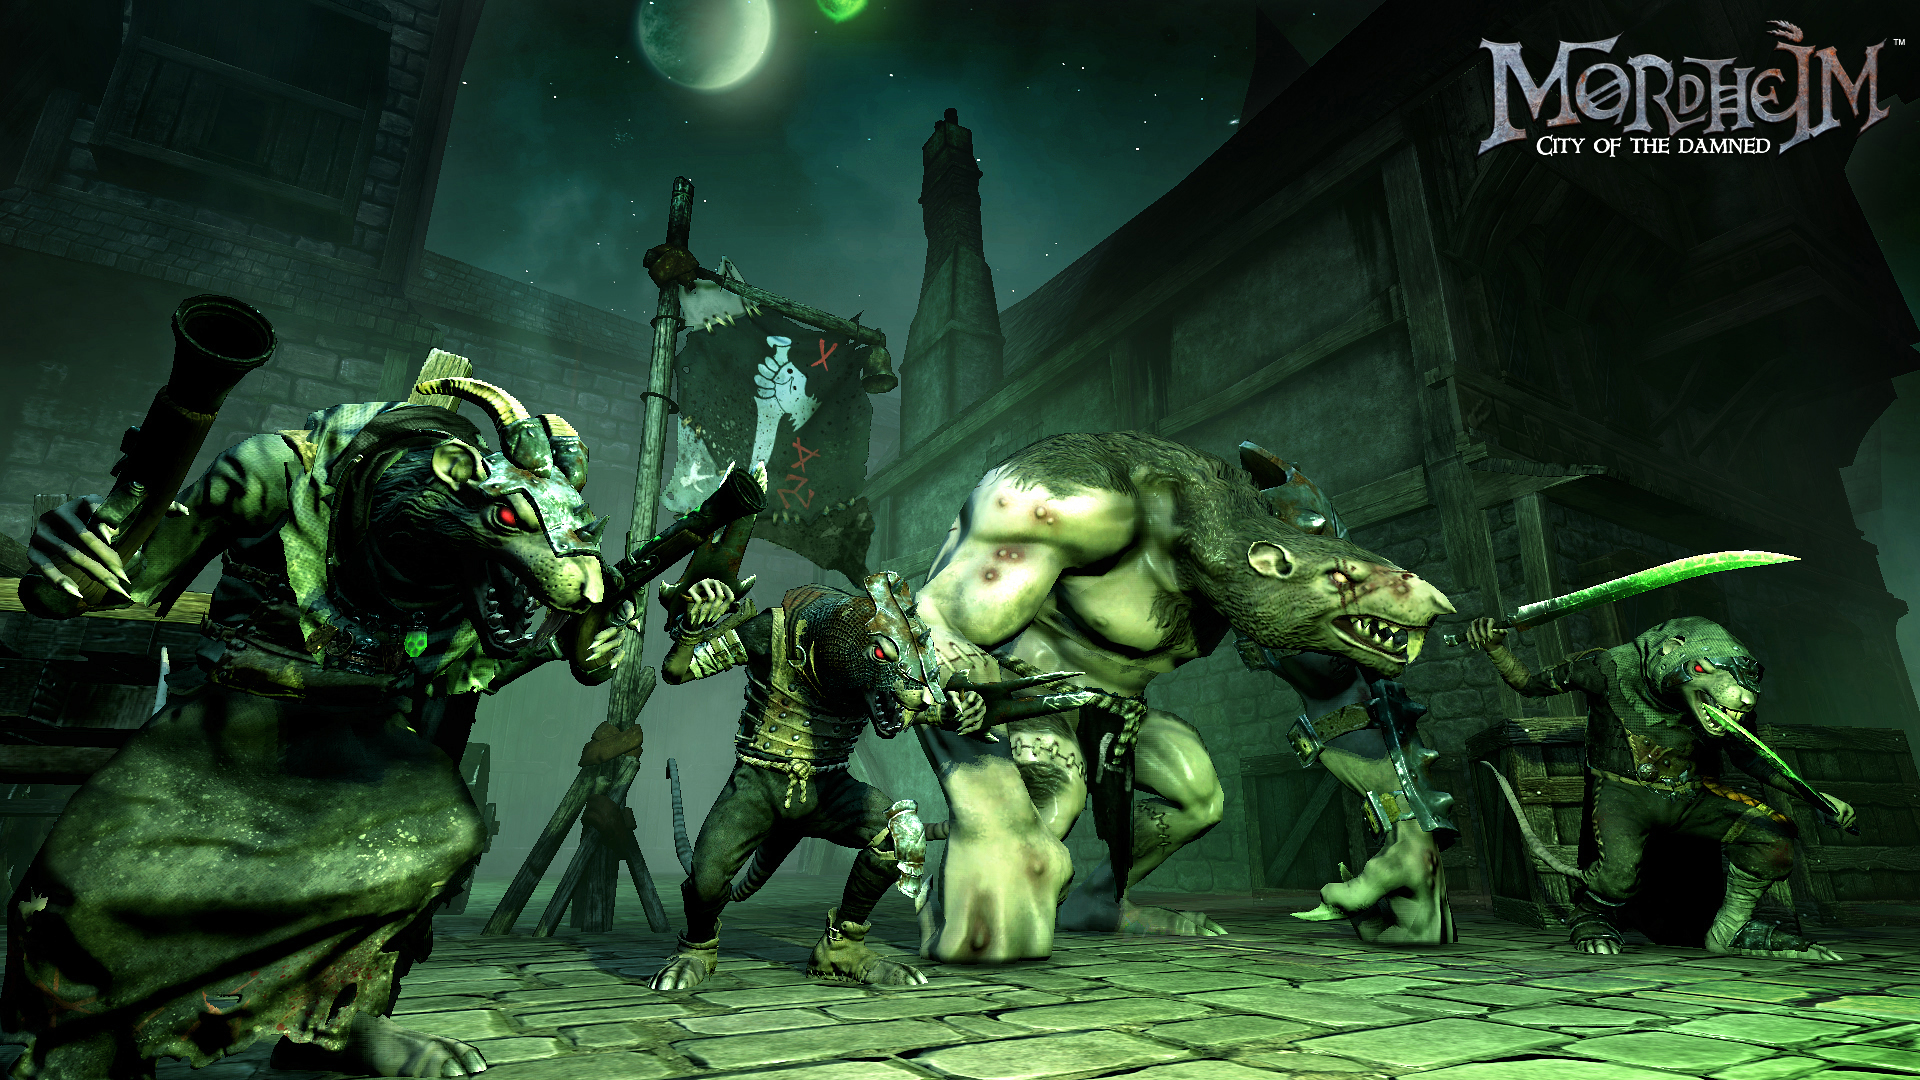 Warhammer's Mordheim: City of the Damned goes from board game to digital release this year